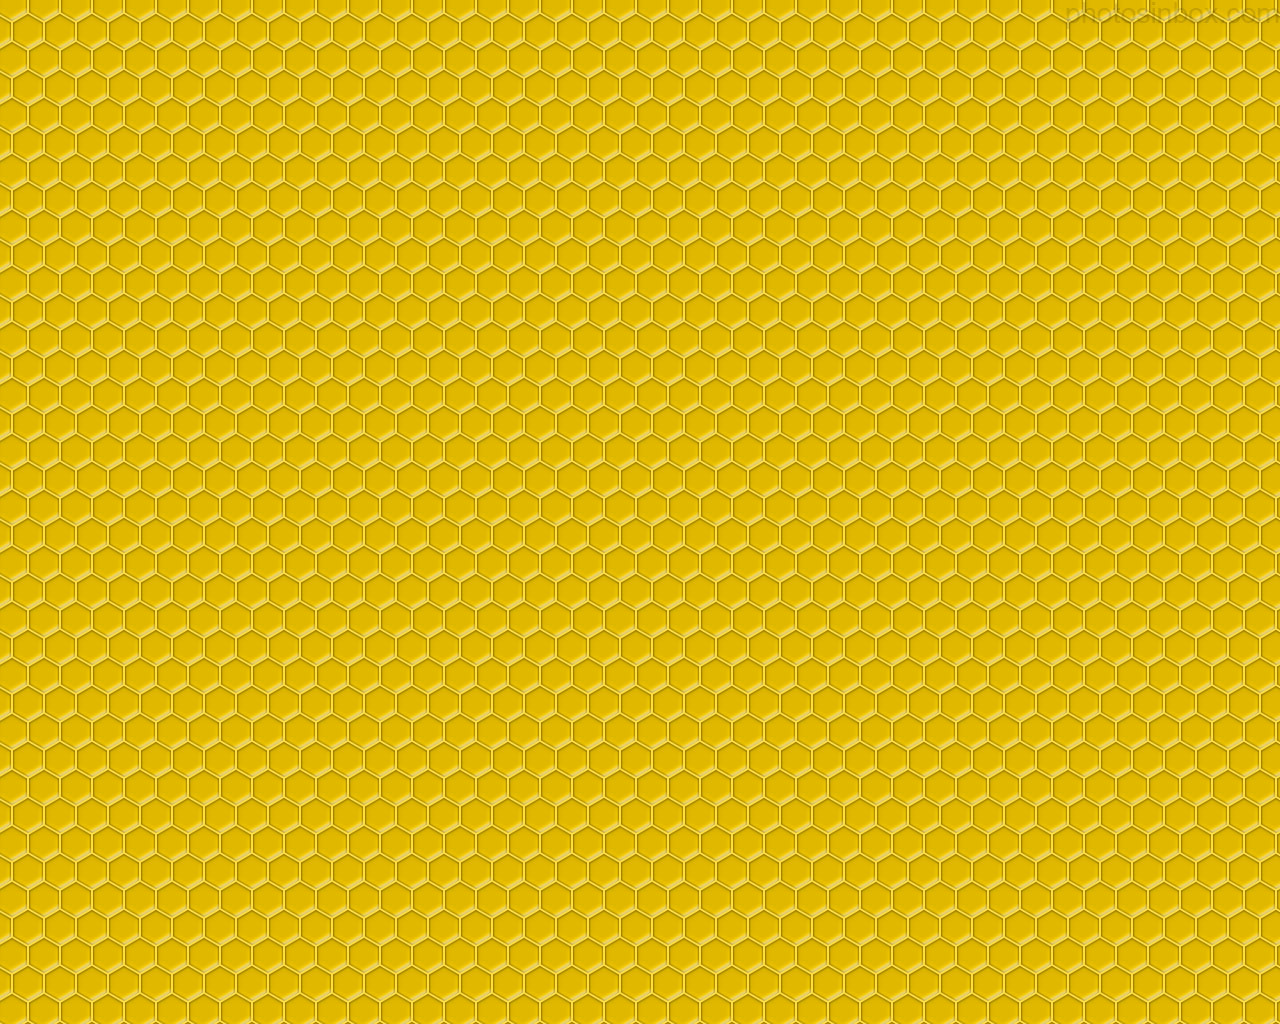 17 Honeycomb Texture Psd Free Images - Honeycomb Template for ...